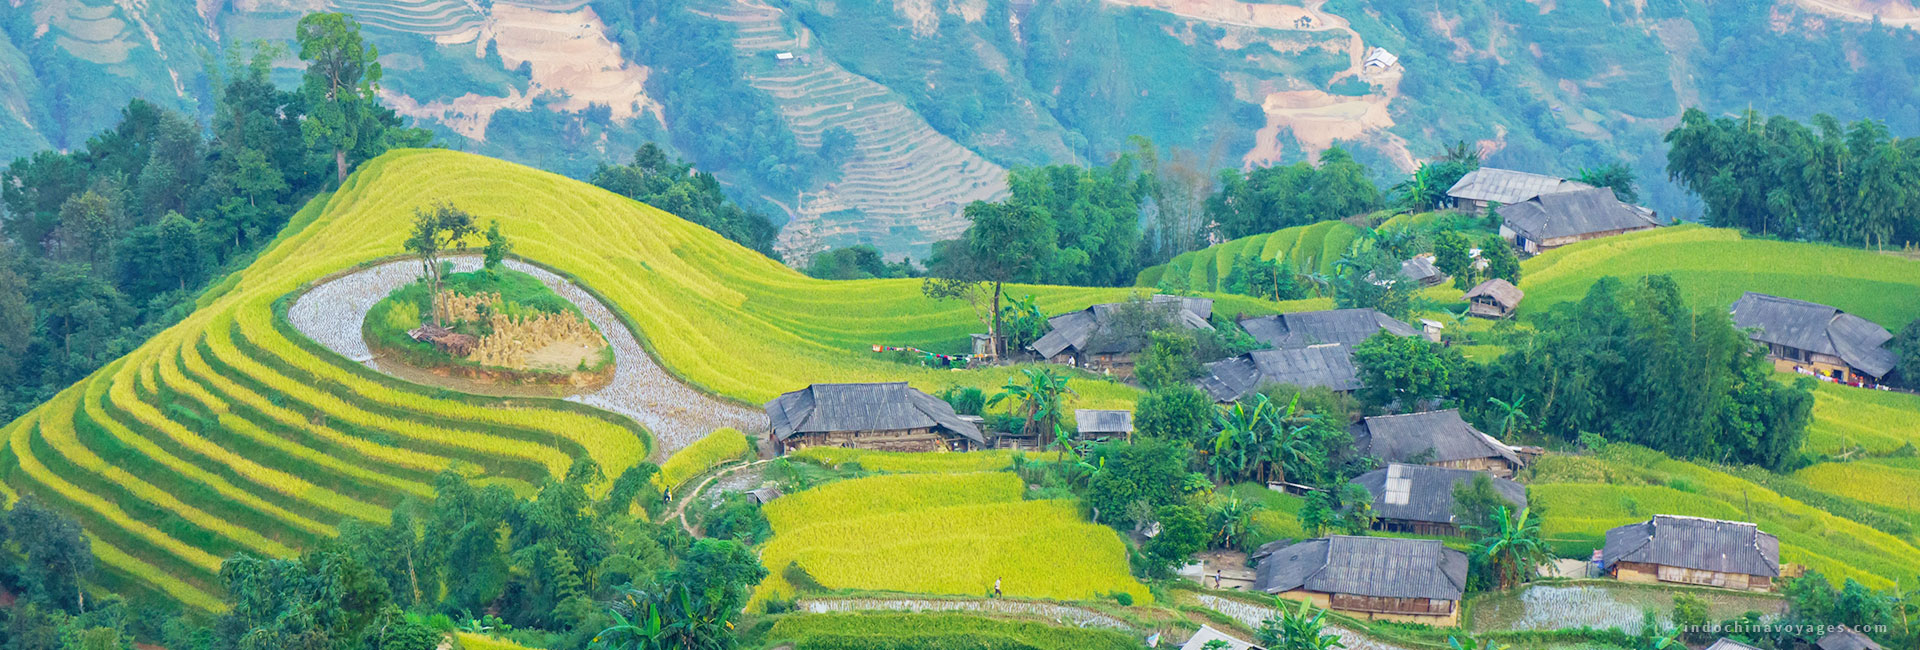 Exploring-Sapa-by-land